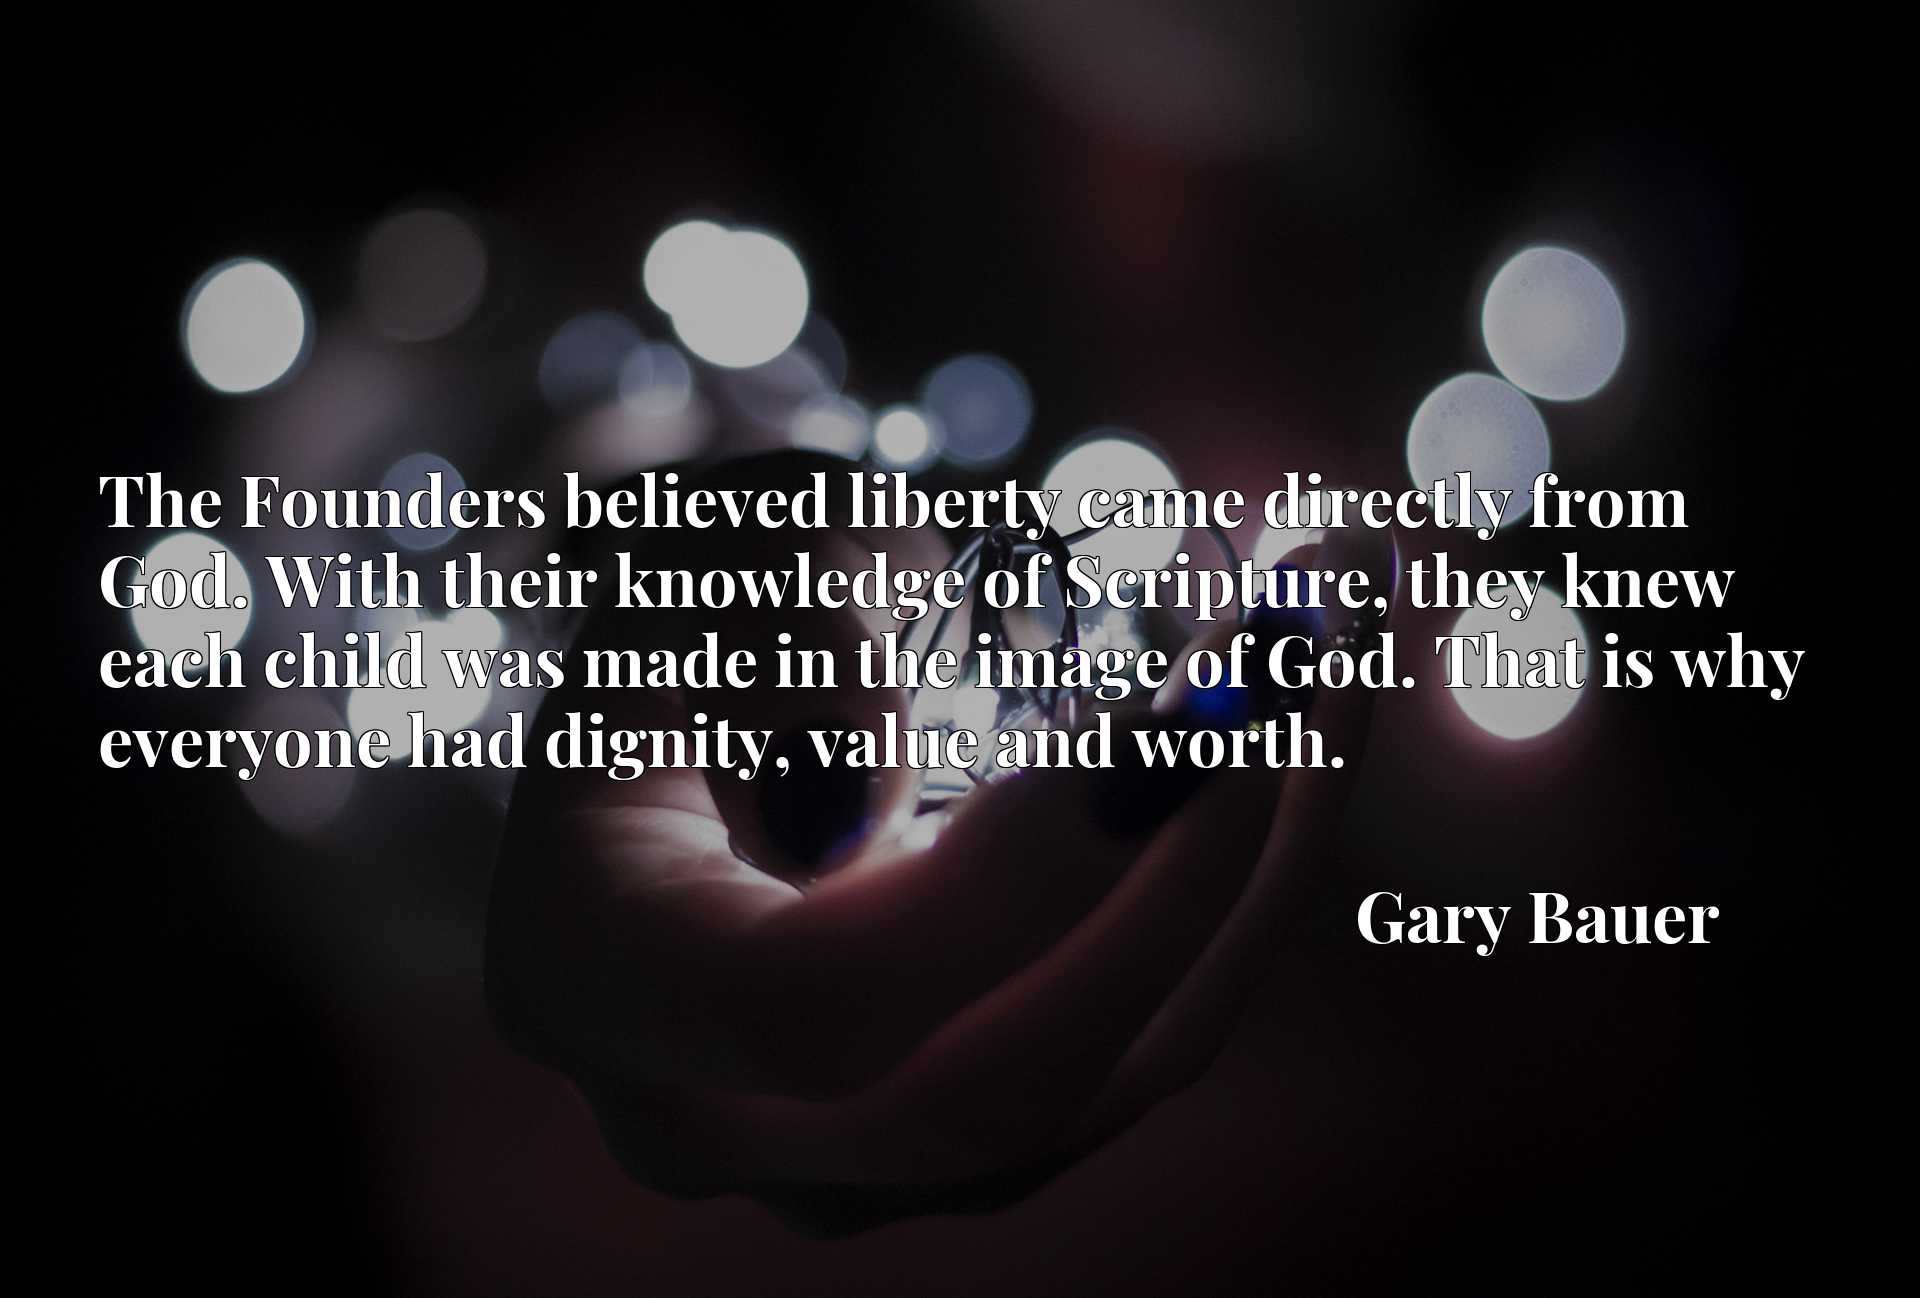 Quote Picture :The Founders believed liberty came directly from God. With their knowledge of Scripture, they knew each child was made in the image of God. That is why everyone had dignity, value and worth.